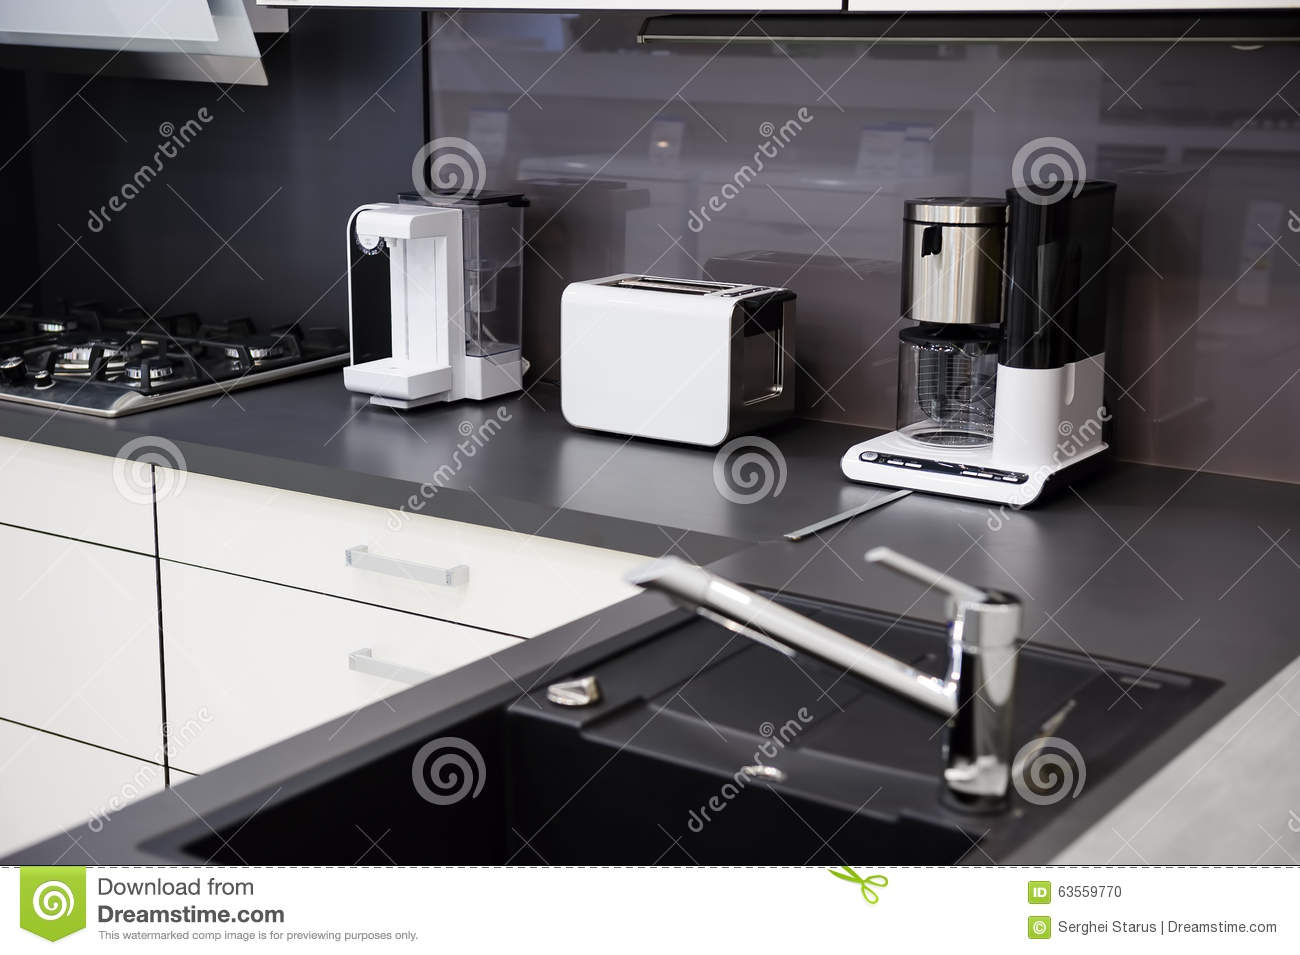 Modern hi tek kitchen clean interior design stock photo Clean modern interior design